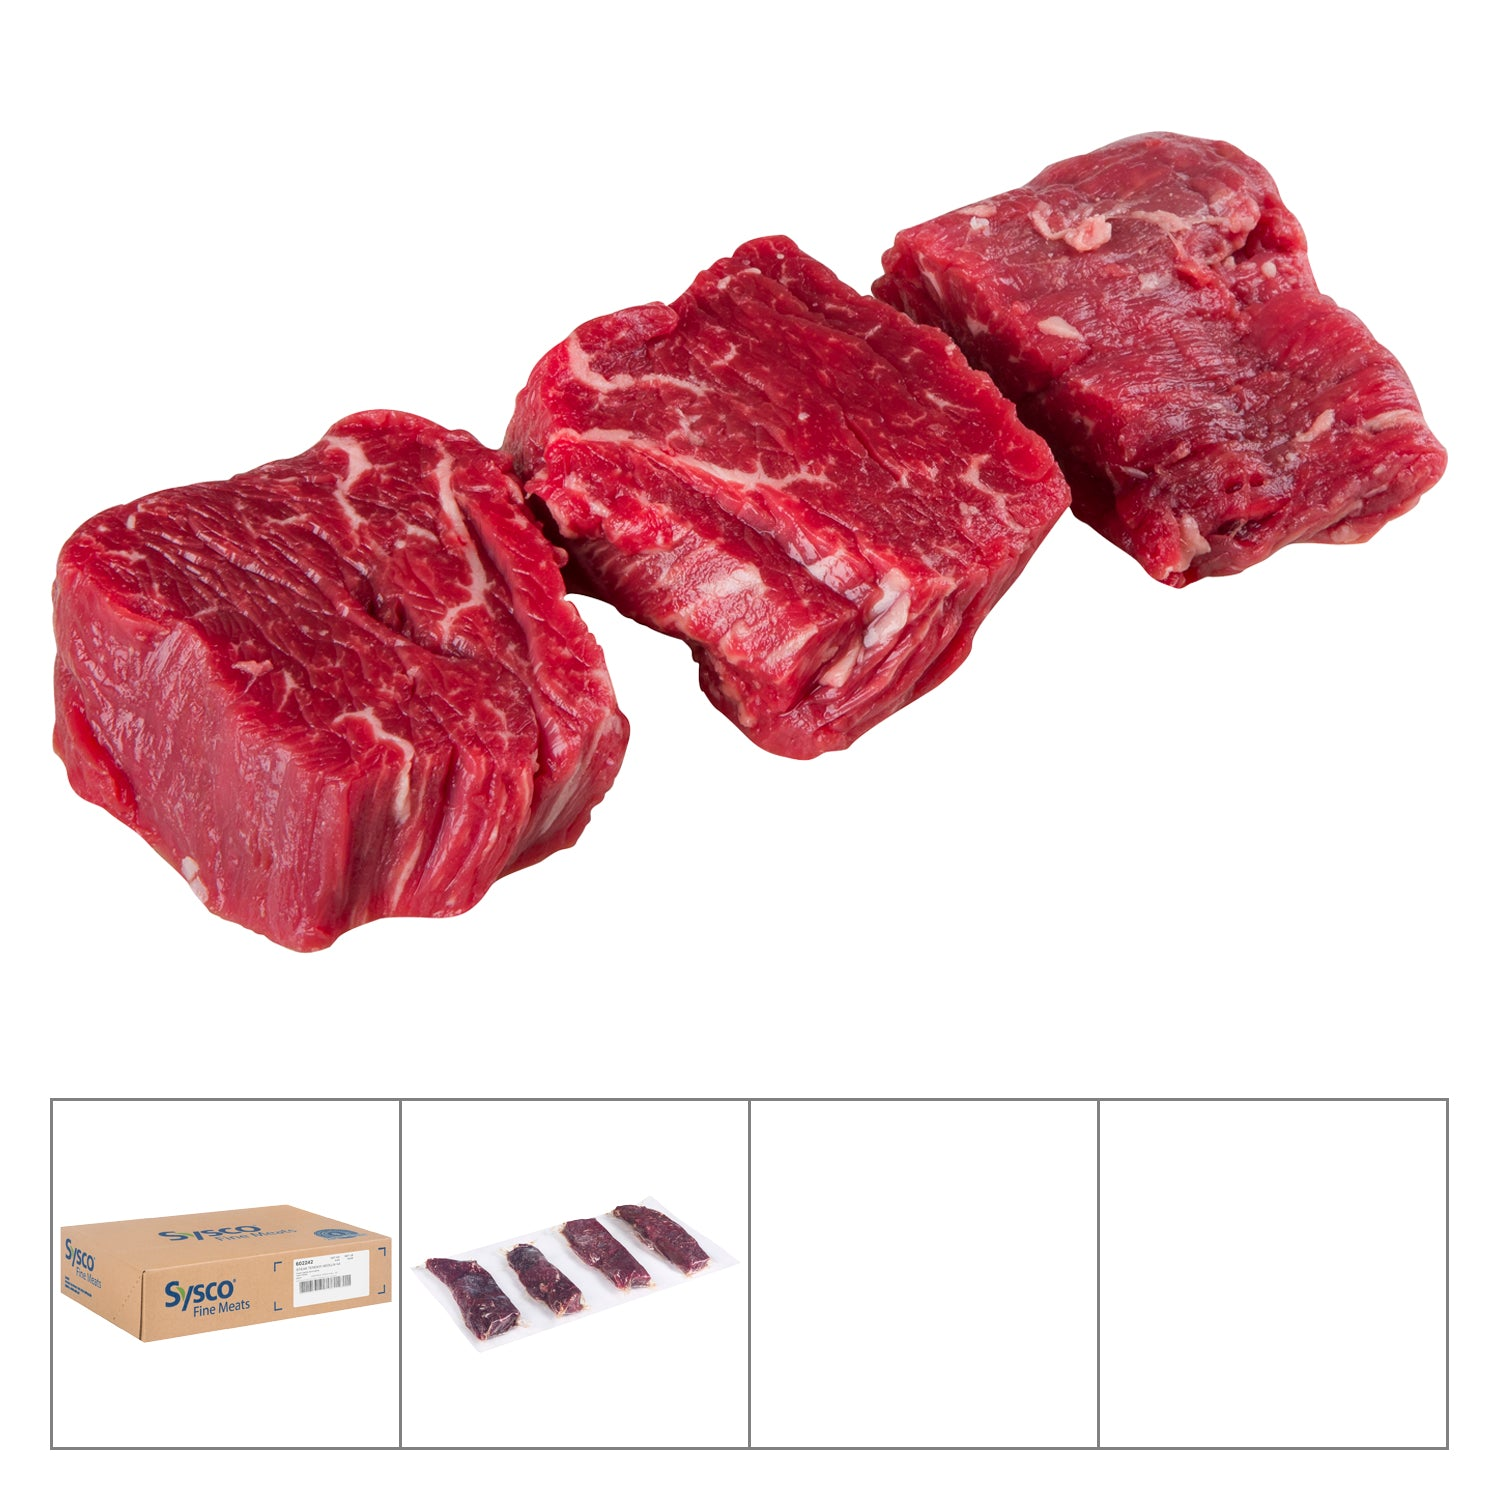 Sysco Fine Meats Frozen Tenderloin Steak Medallion 60 count - 1 Pack [$36.99/kg]